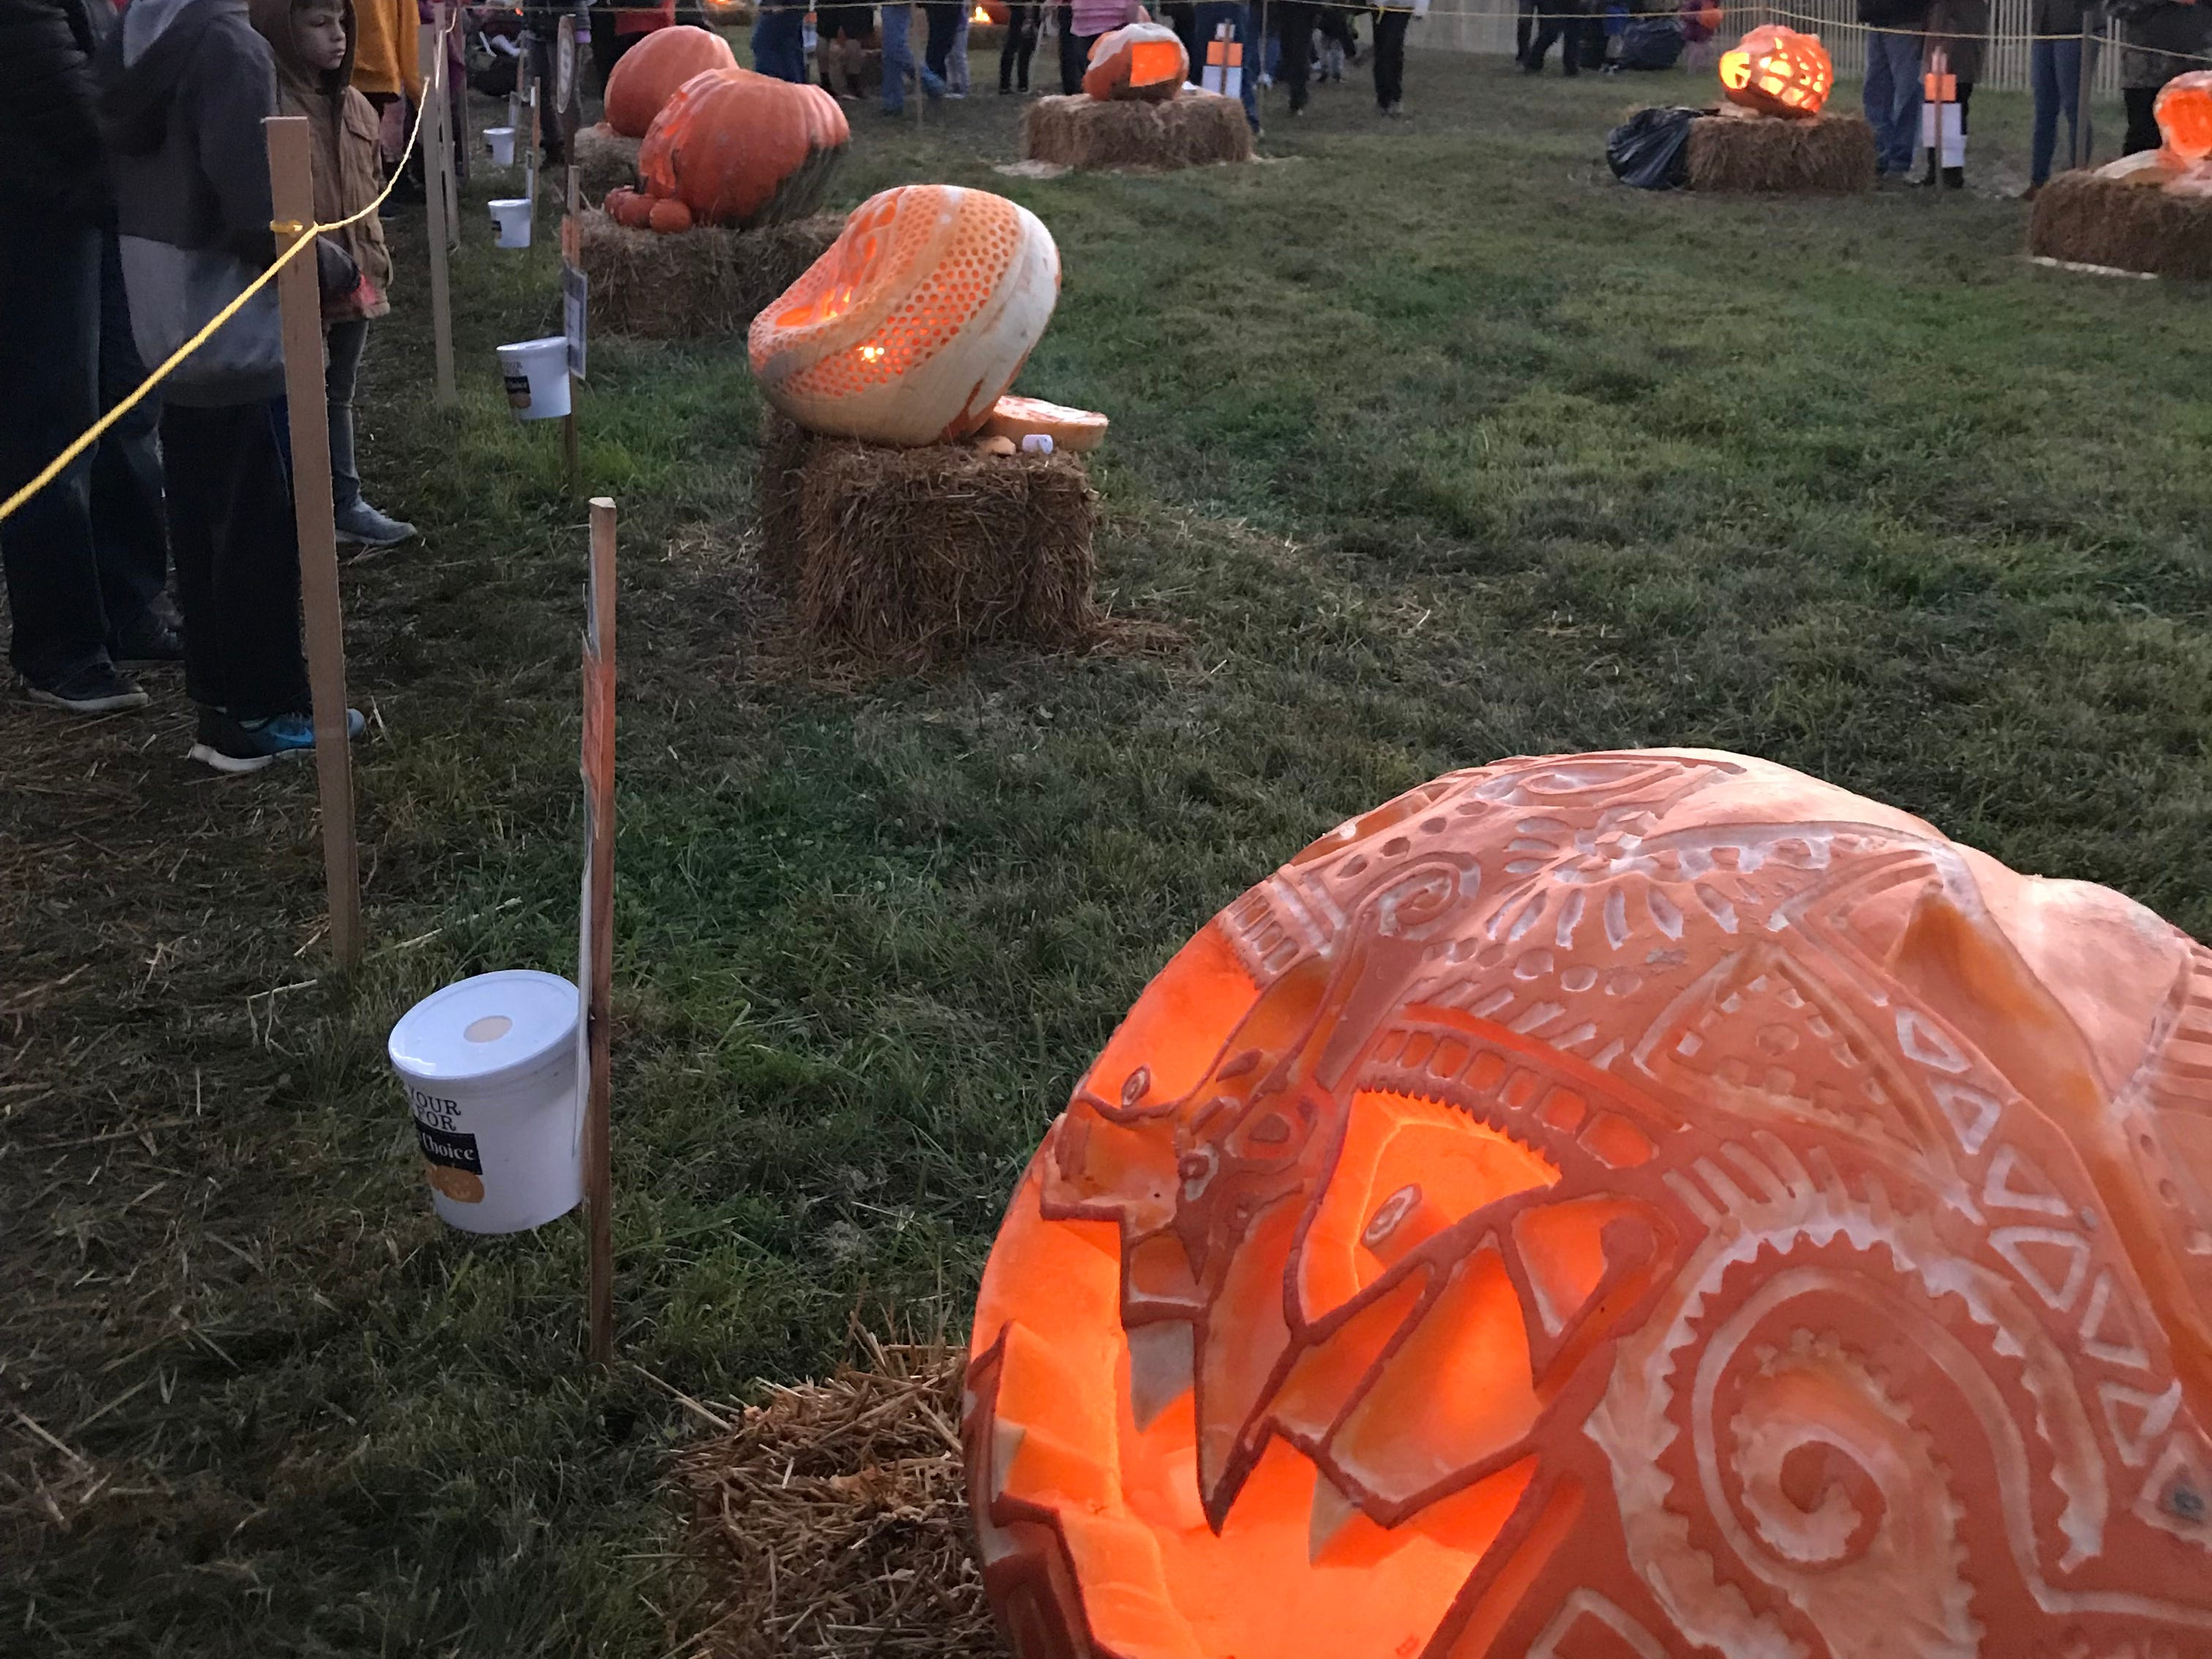 A sugar skull pumpkin carved Brittany Wagner and Kevin Simmons was a favorite at the 2018 Great Pumpkin Carve in Chadds Ford, Pennsylvania.